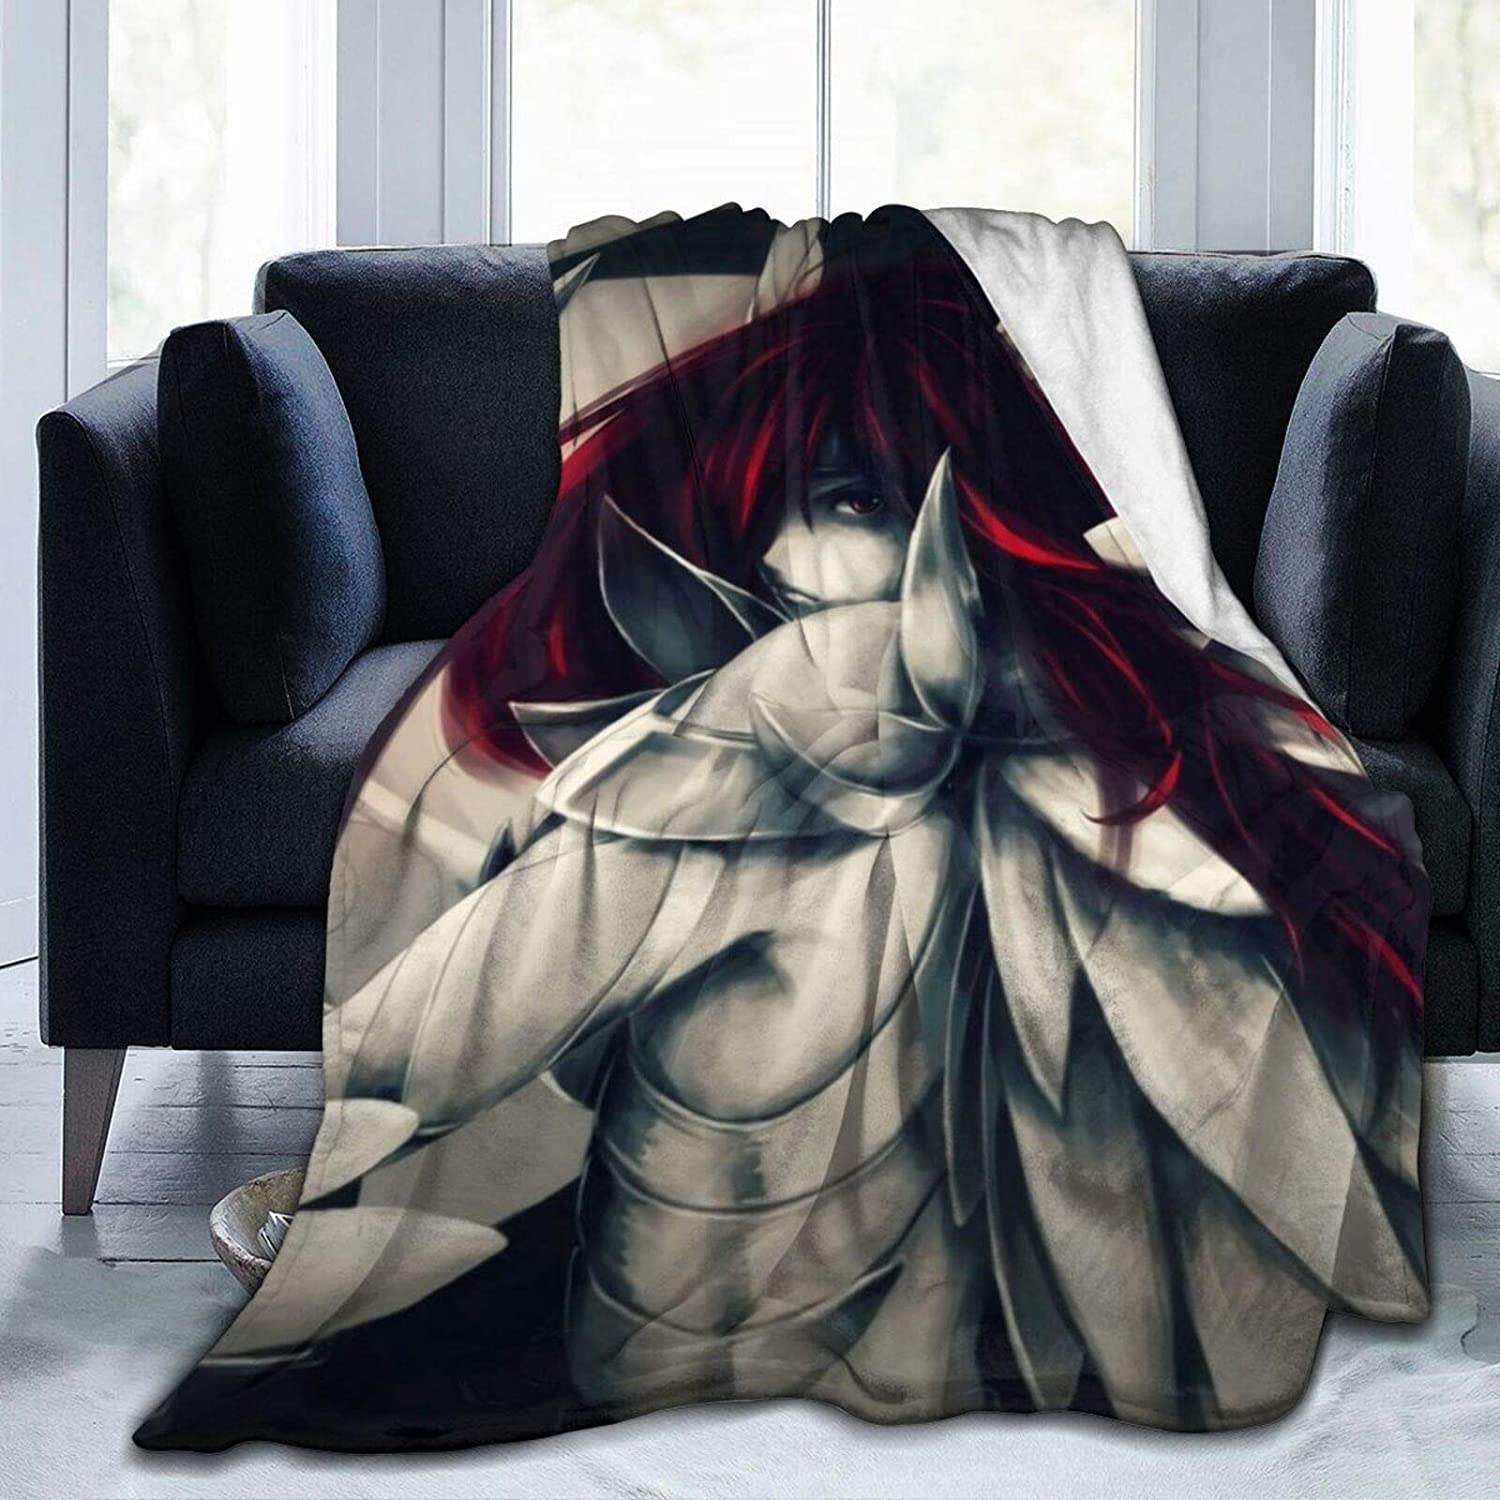 Fairy and Tail 40%OFFの激安セール Anime Dragon Cry Scarlet Rust Throw Erza 出色 Blanket